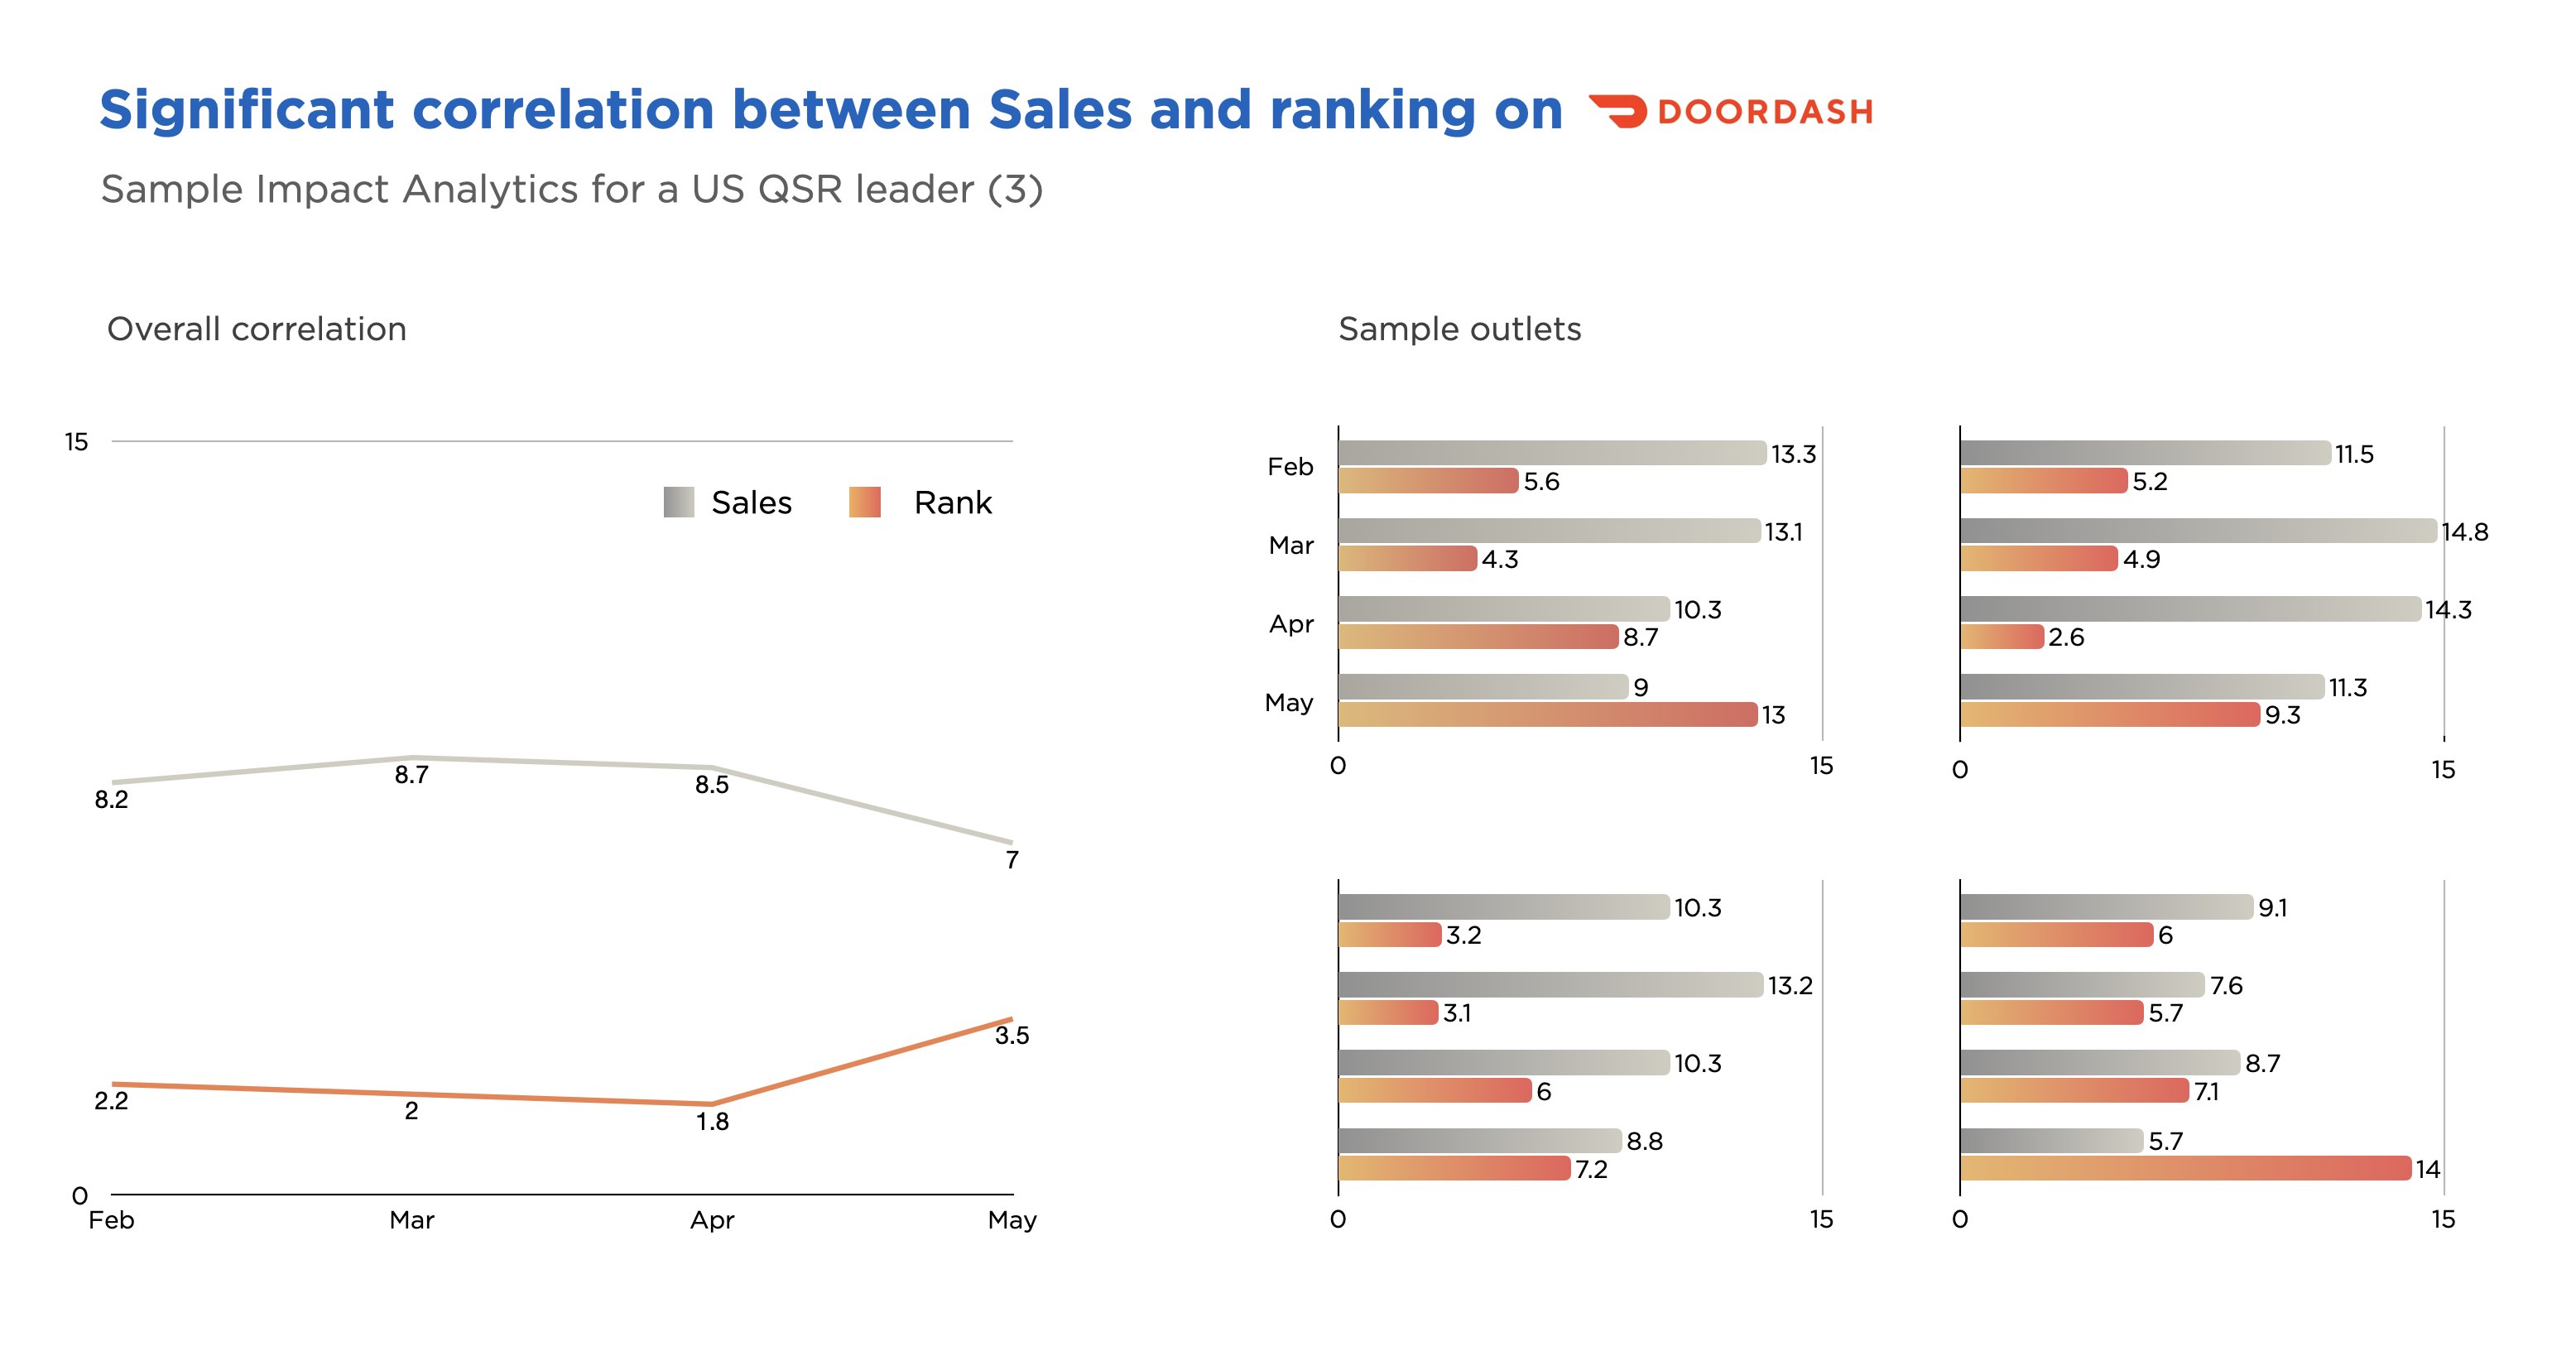 High correlation between ranking and sales